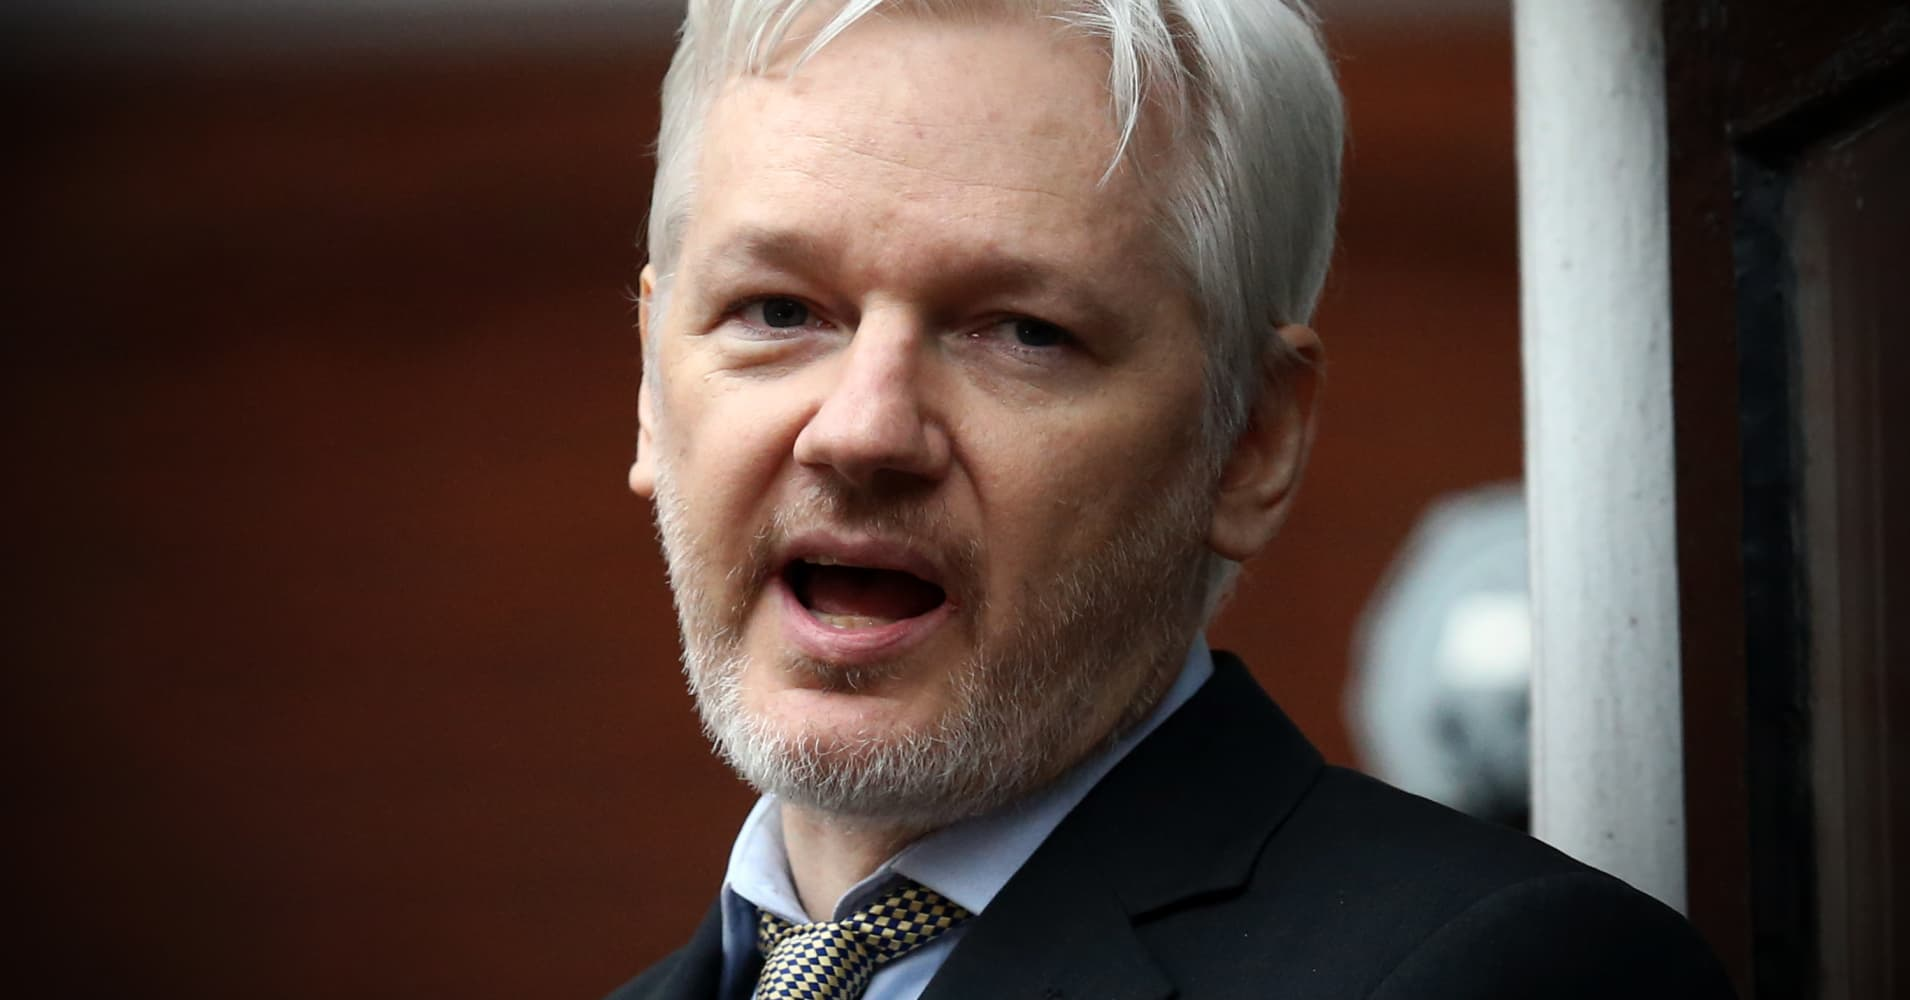 US reportedly looking to prosecute Julian Assange